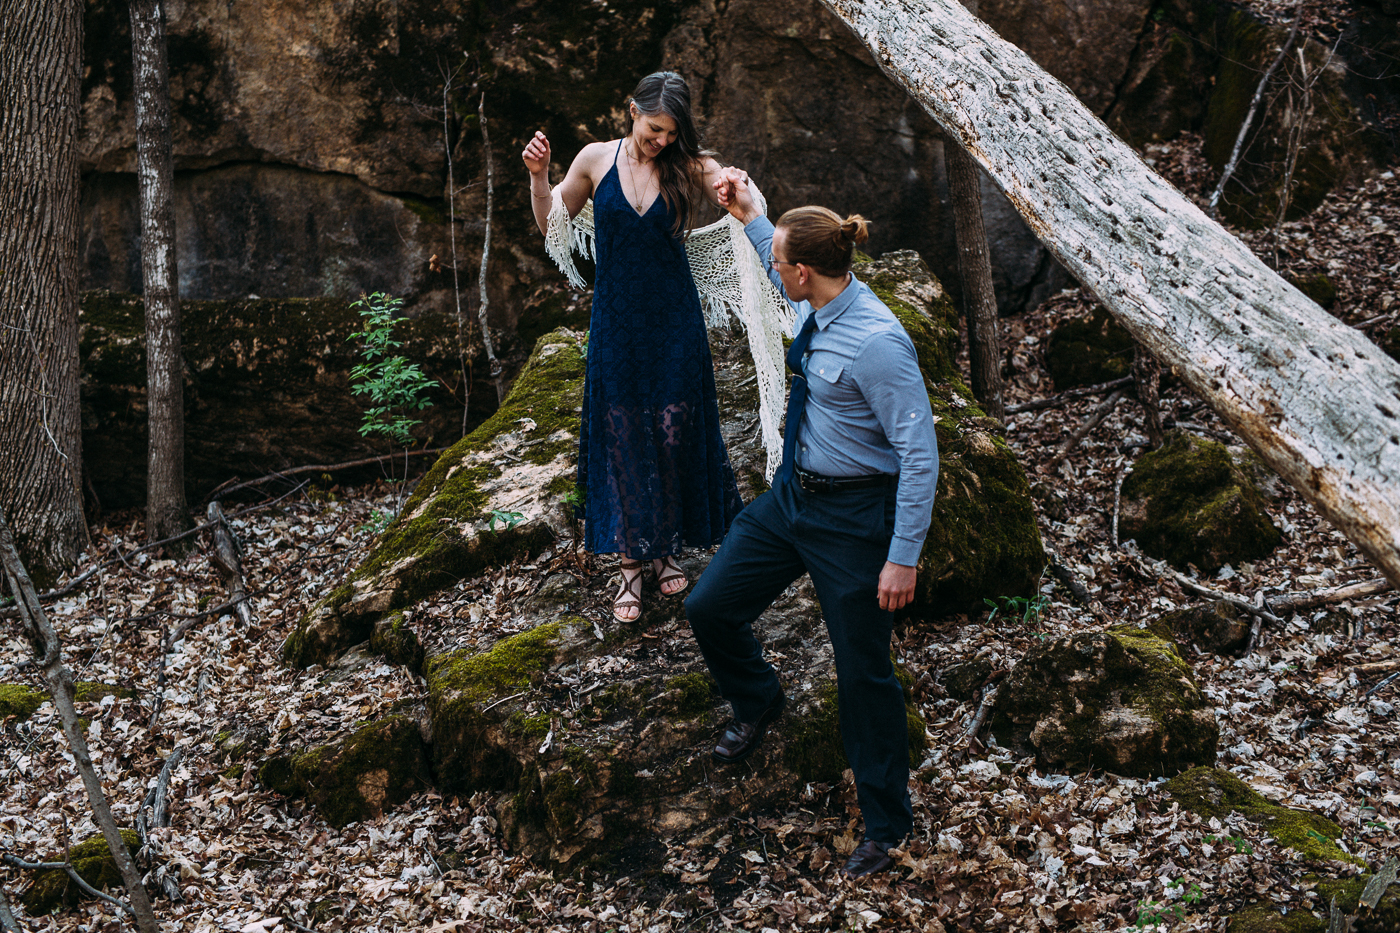 erinwheat photography-jplaurenelopement7251